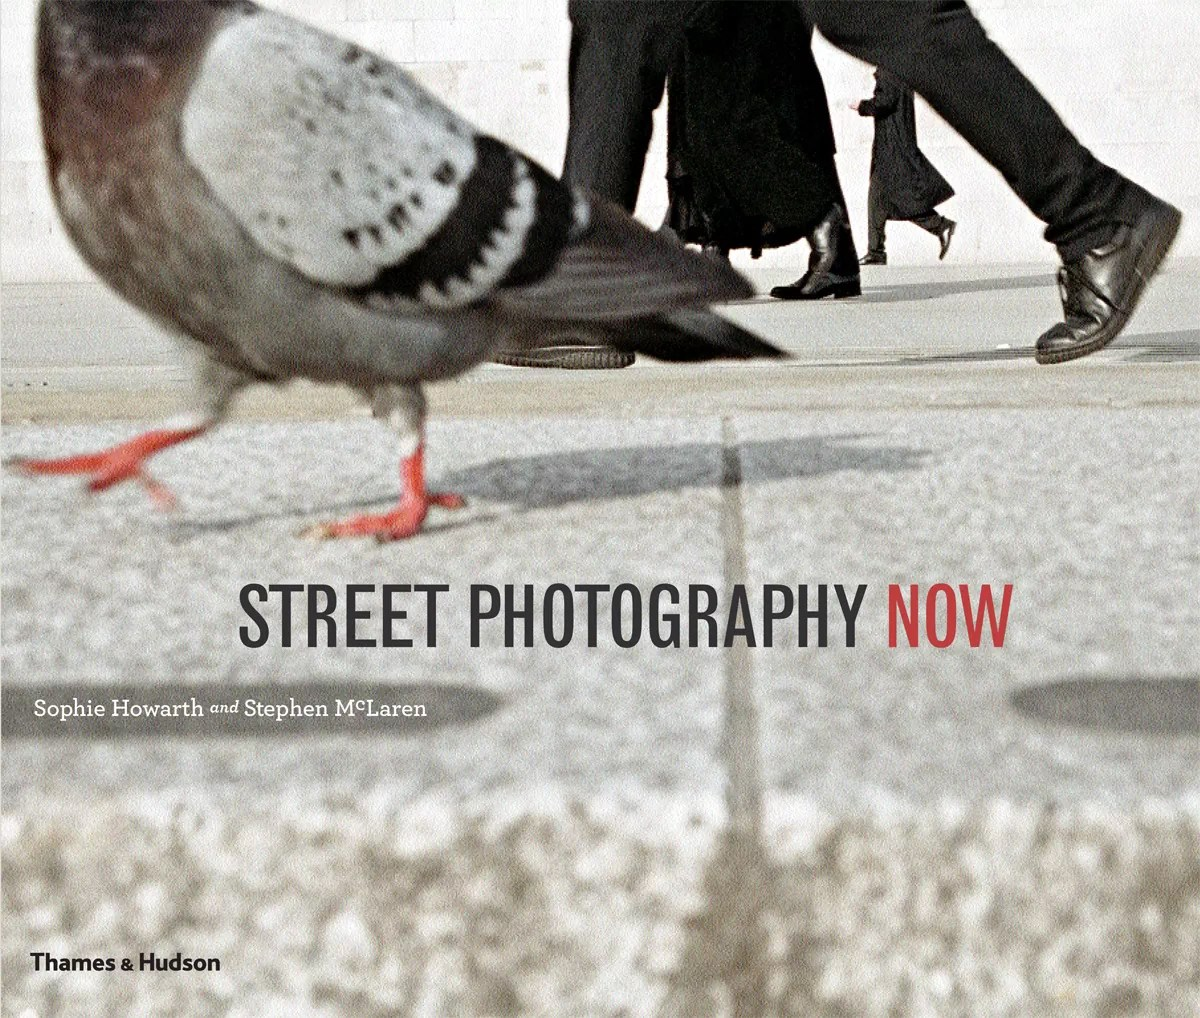 STREET PHOTOGRAPHY NOW [recensione]